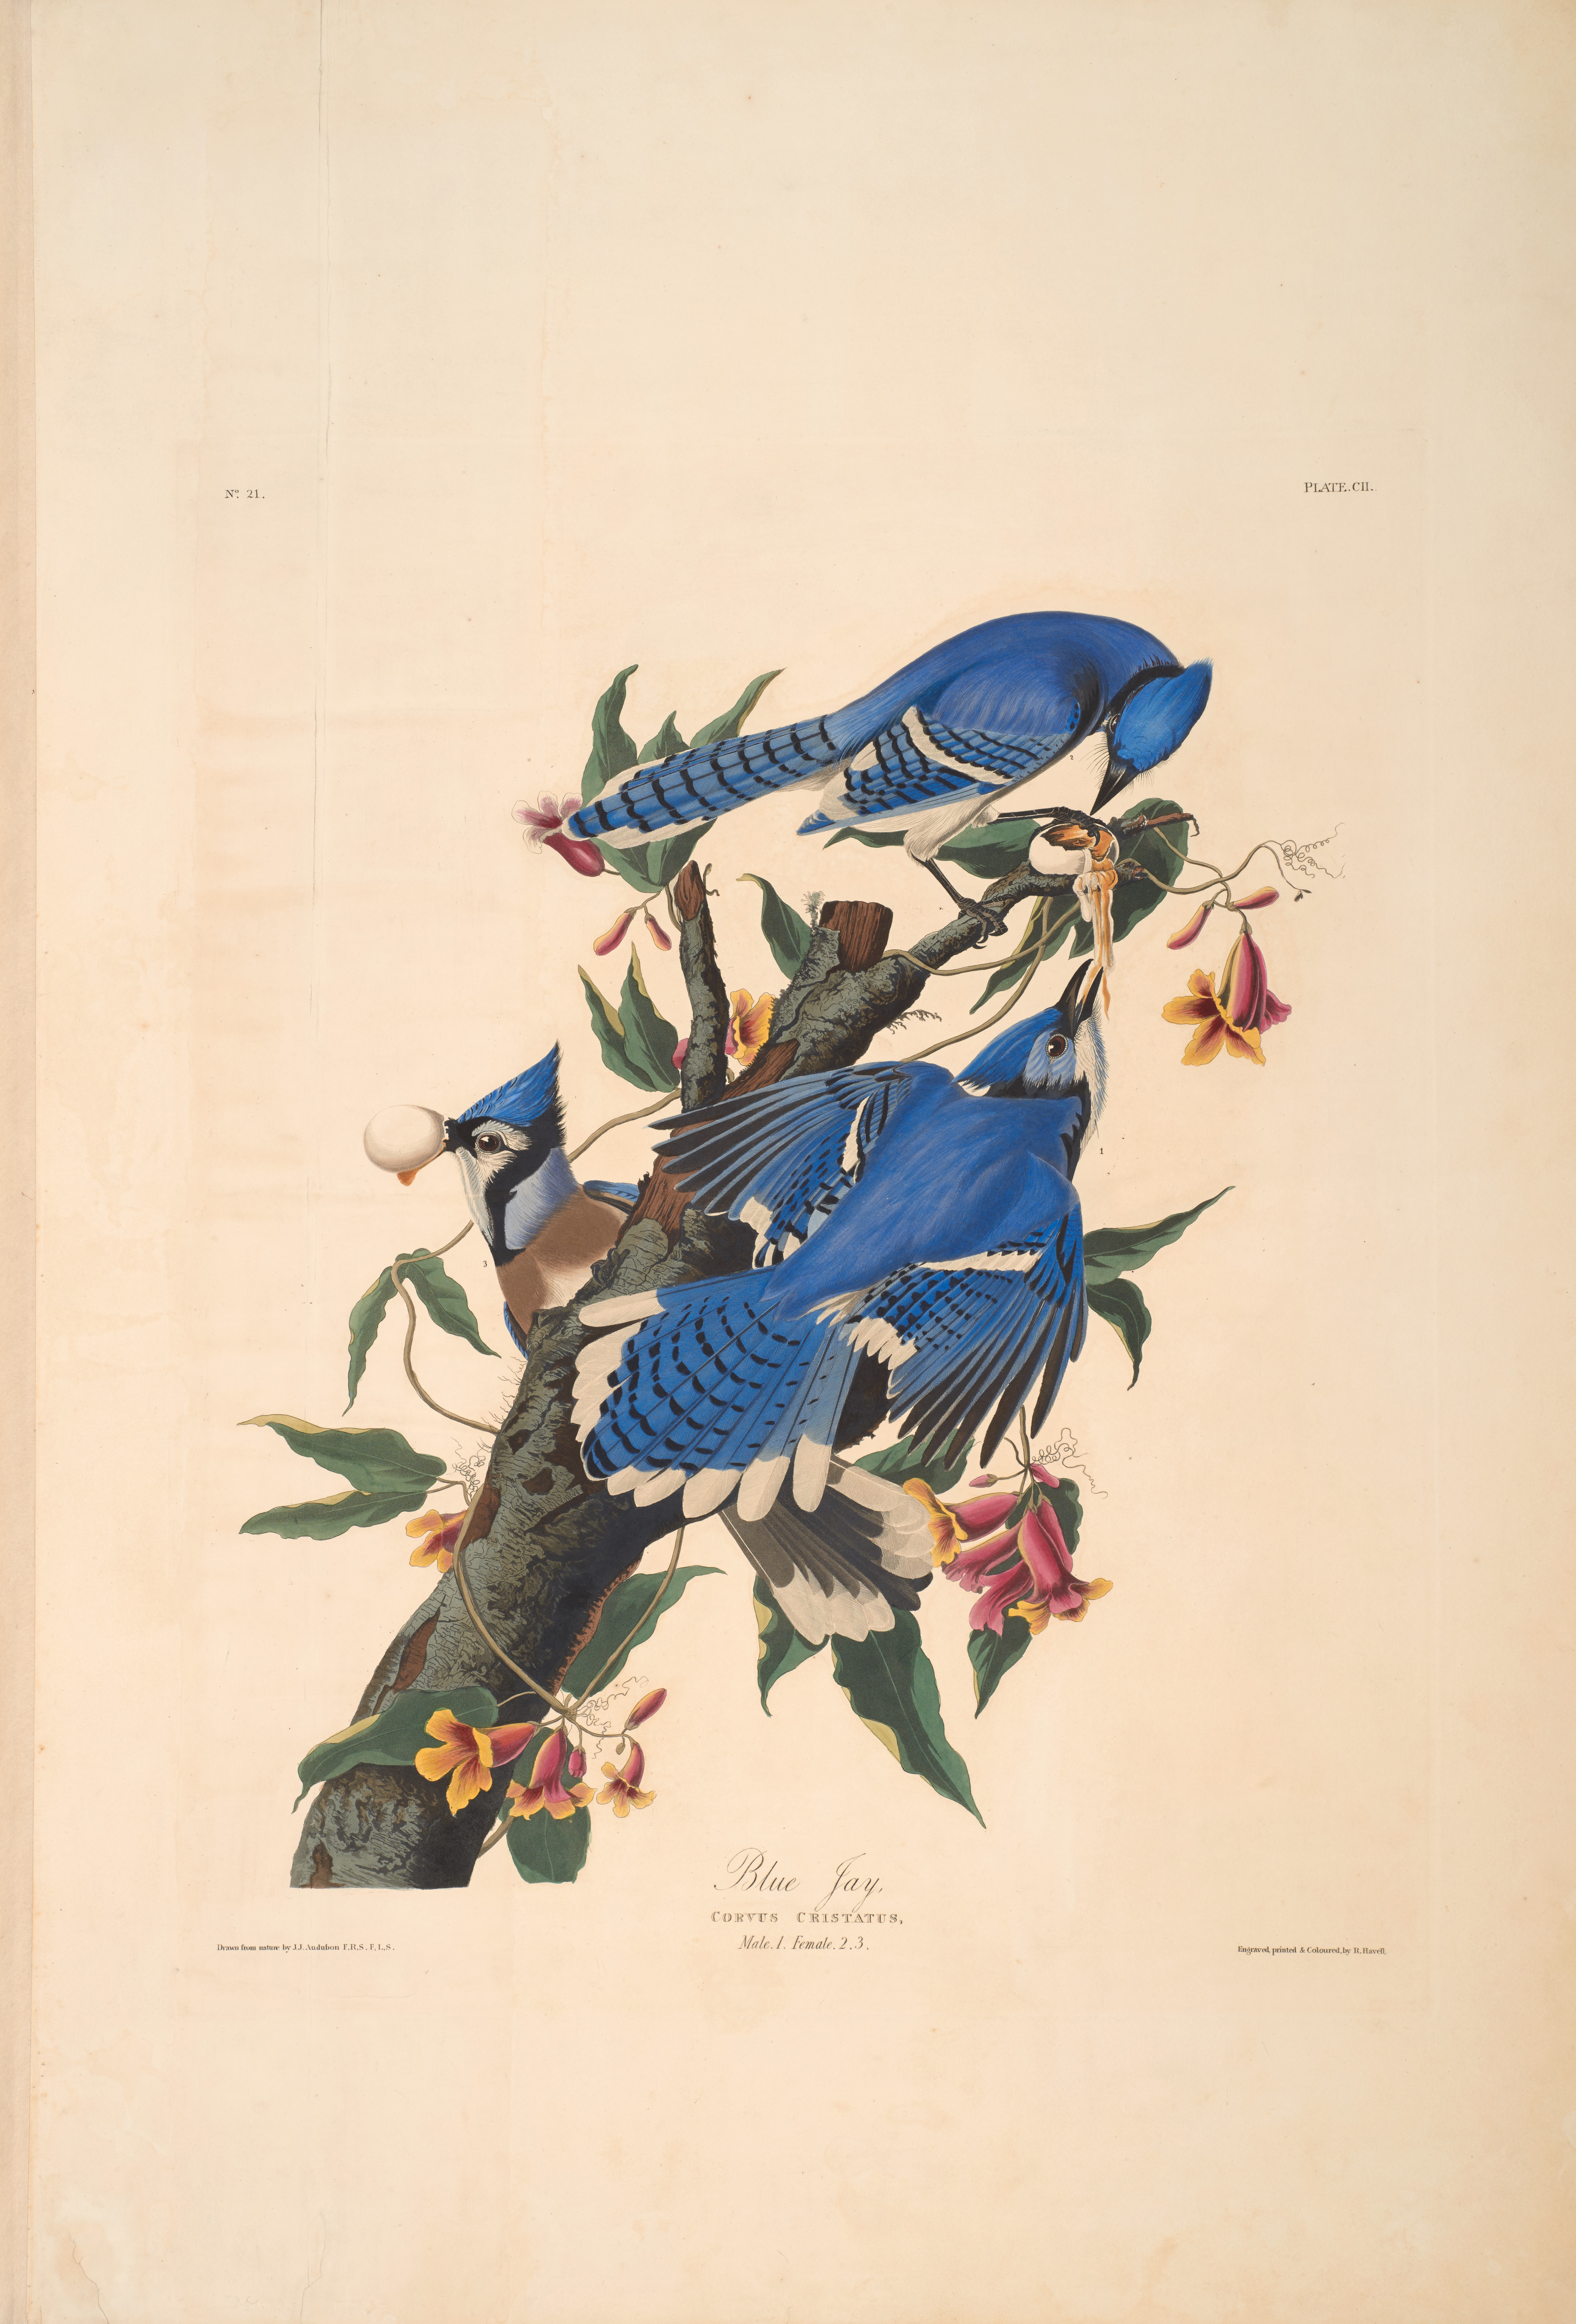 John James Audubon, Blue Jay, from The Birds of America, 1827 – 38 , hand - colored aquatint/engraving on paper , 40 x 26 in., North Carolina Museum of Art, Transfer from the North Carolina State Library